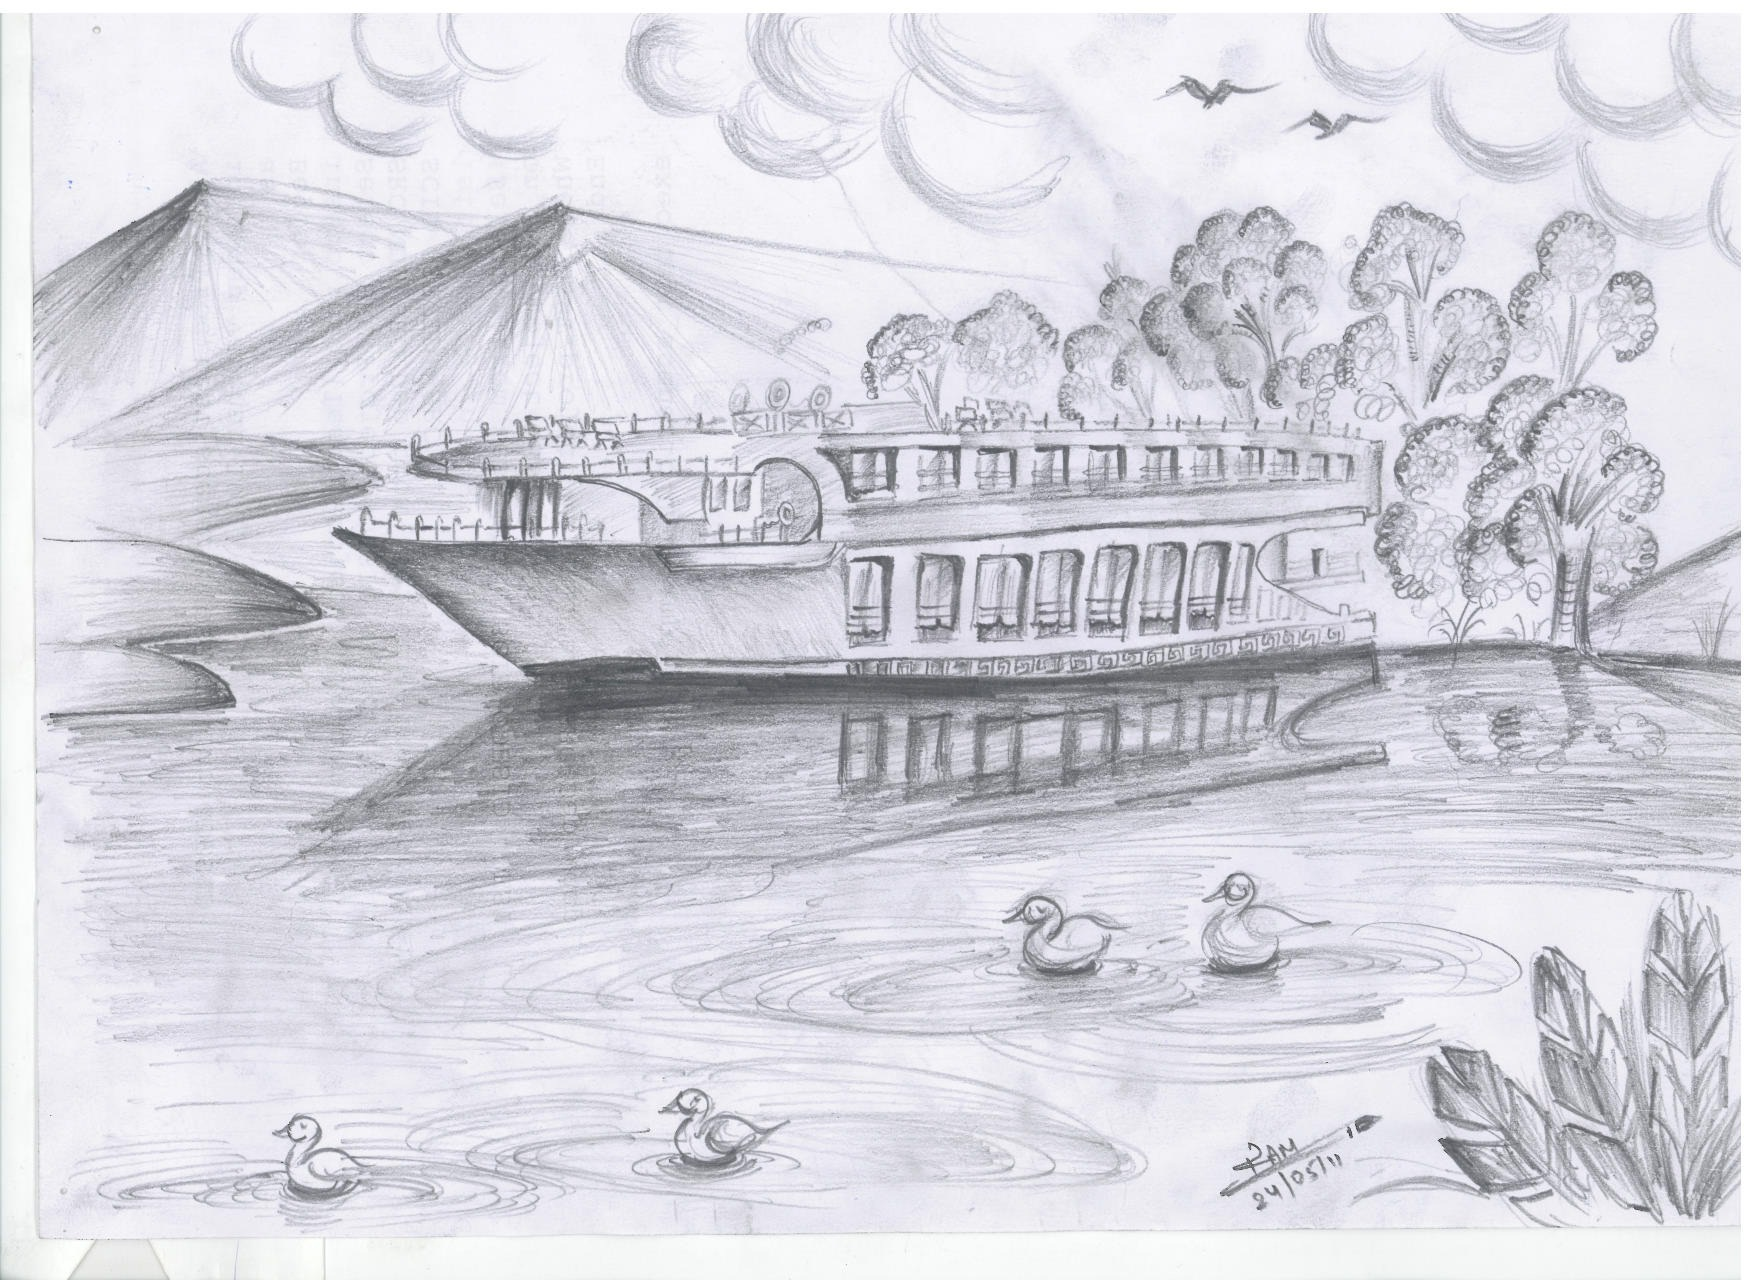 Drawn scenery pencil sketching Drawing Sceneries Drawing Pencils Children